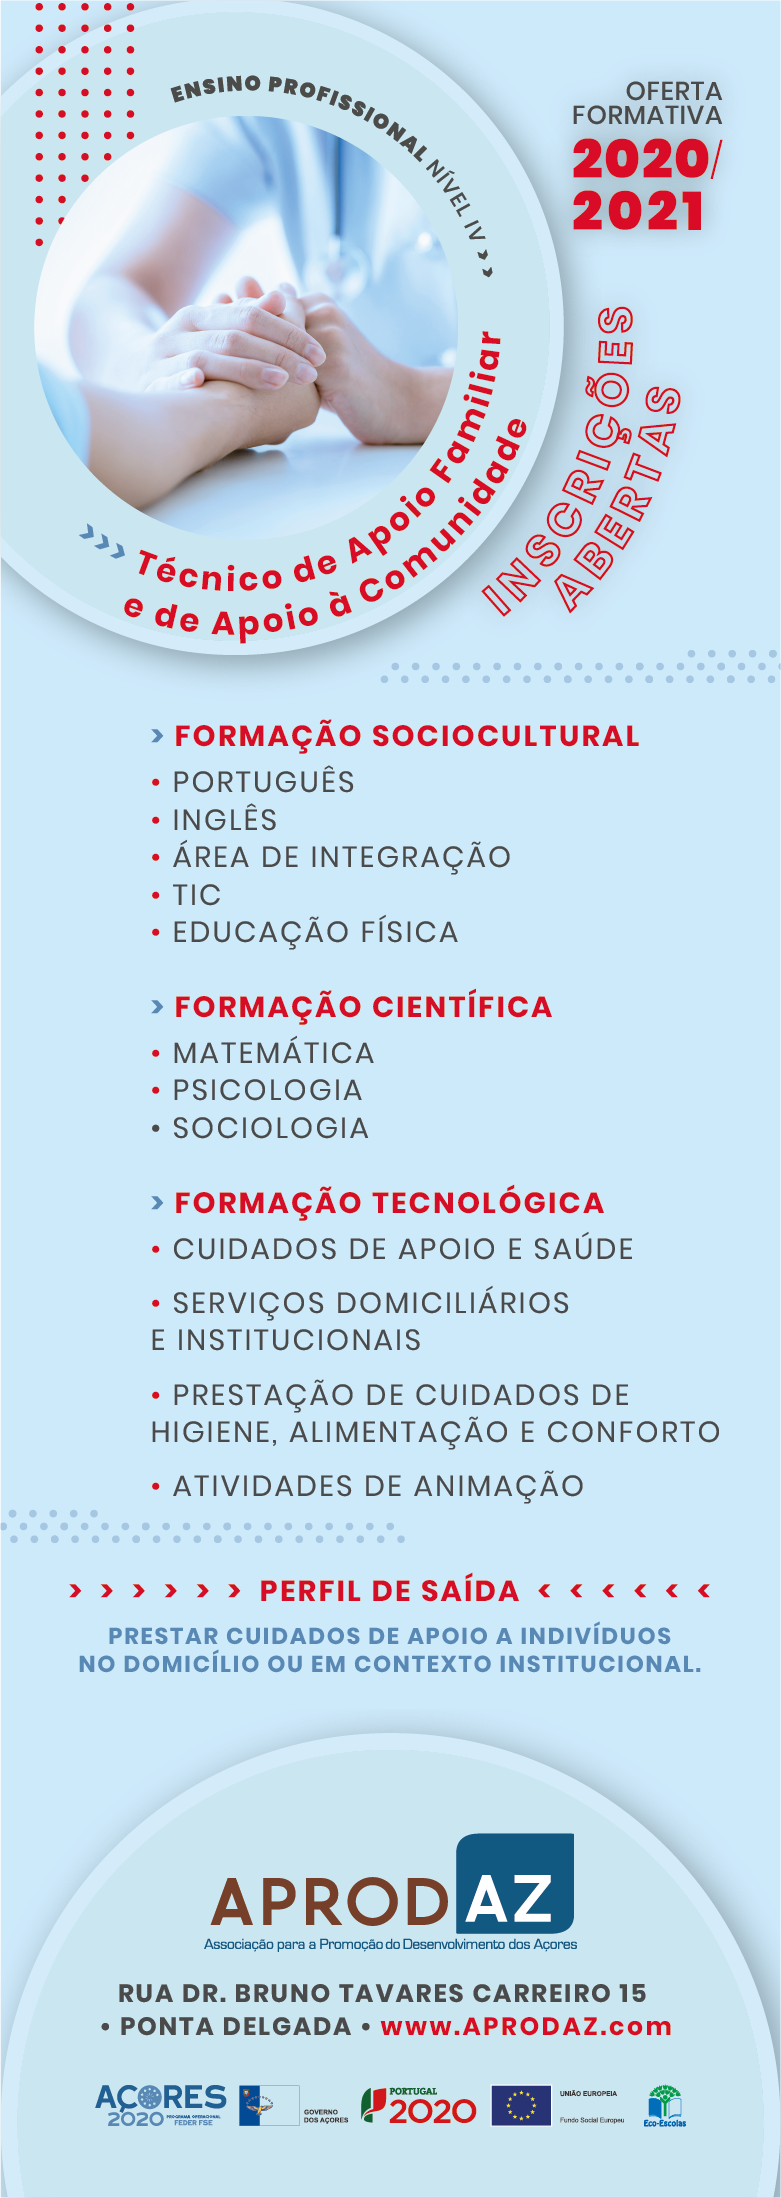 bookmarker-afac.png